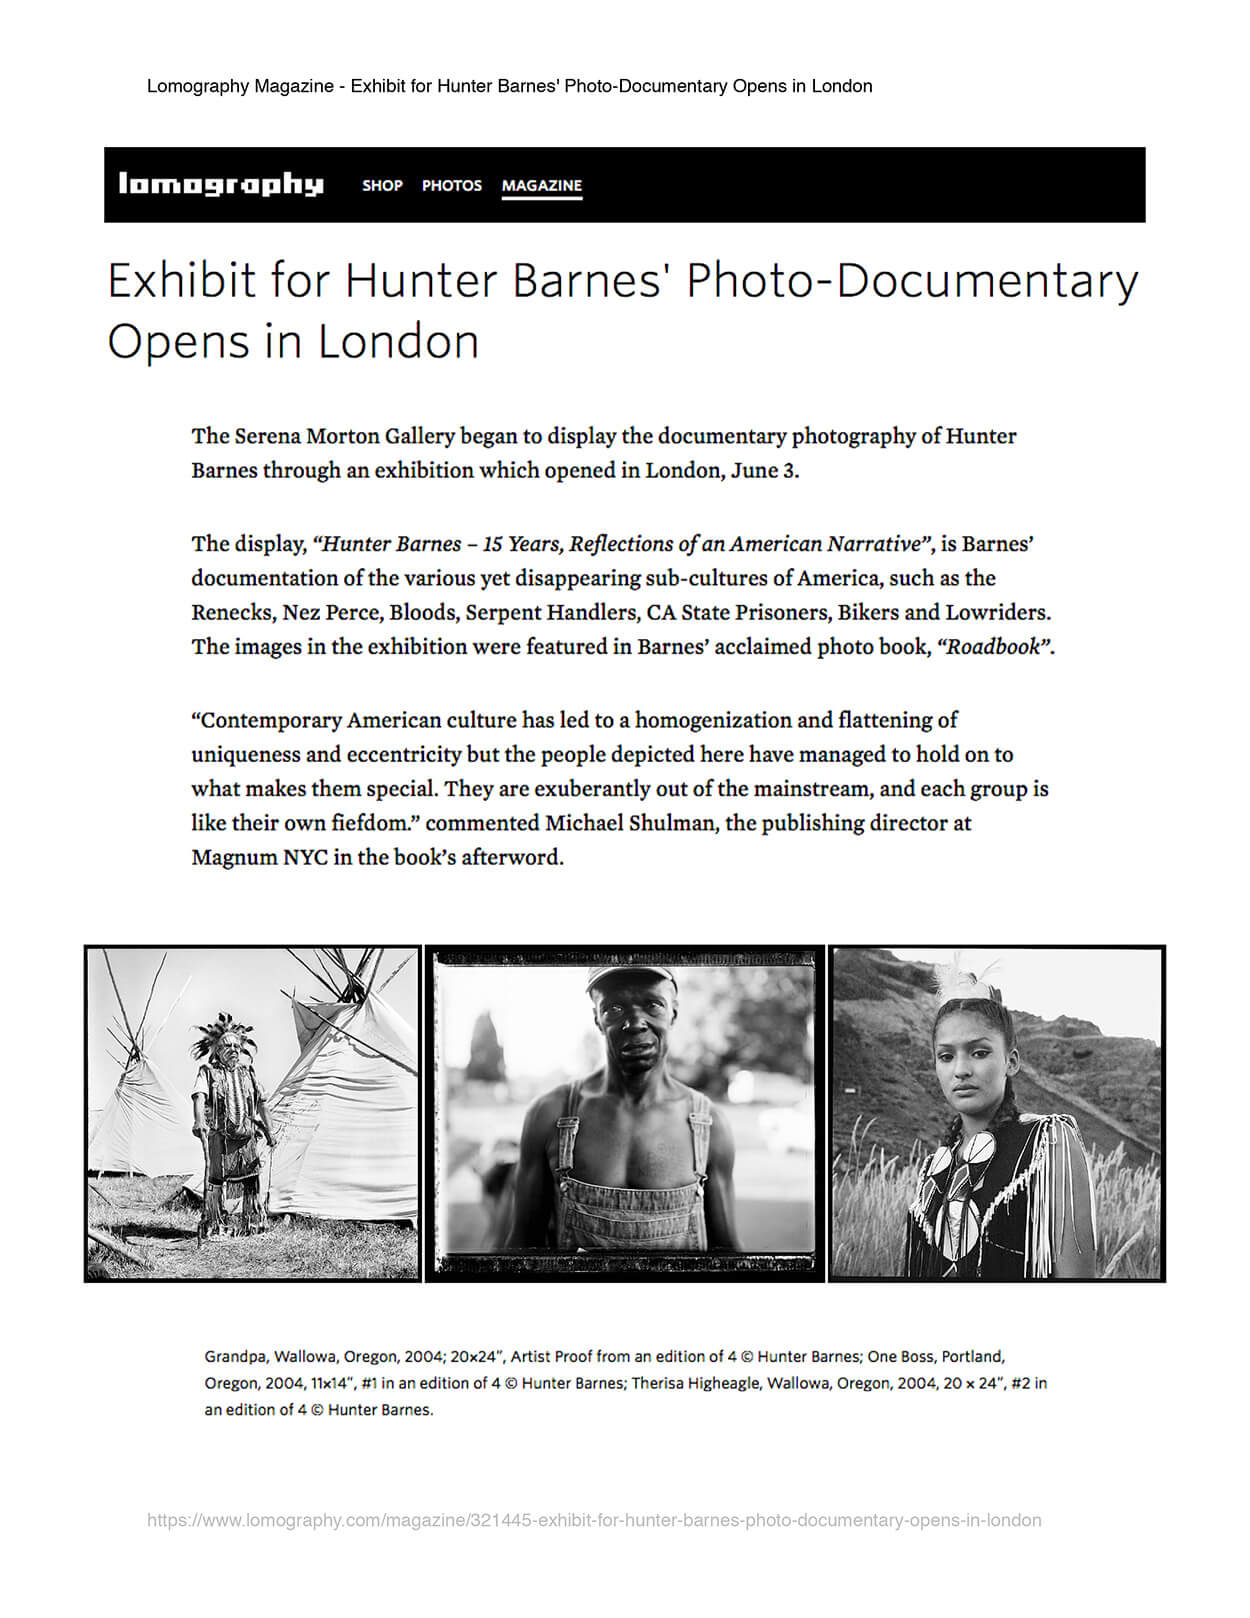 Exhibit for Hunter Barnes' photo documentary opens in London - Lomography Magazine - Page 1